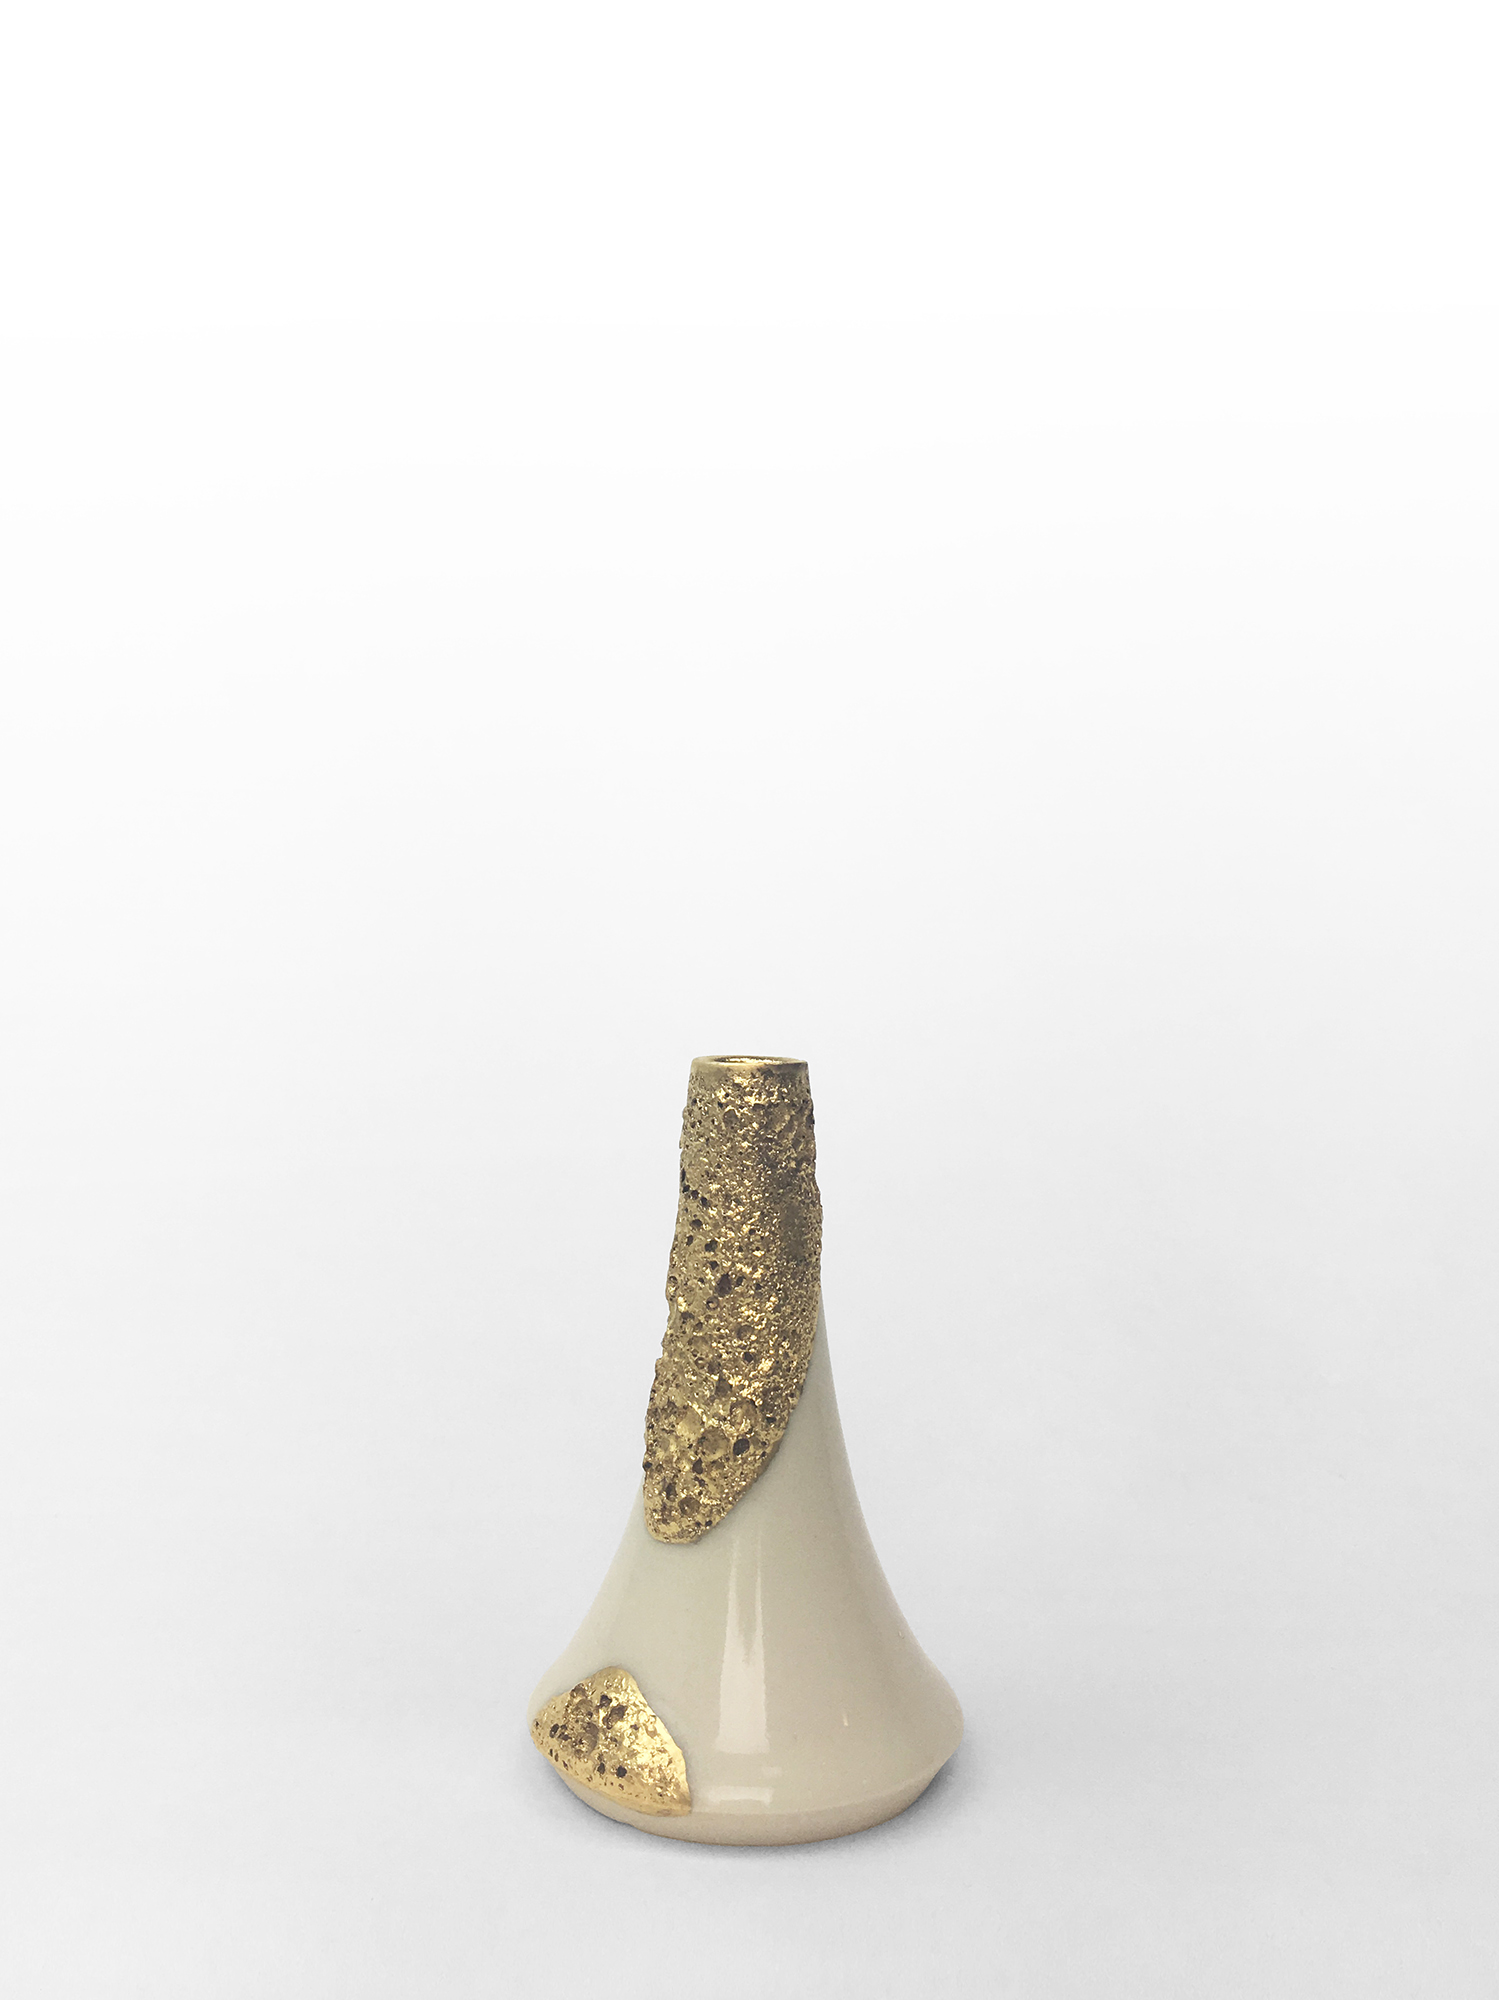 """Small volcano vase, hand-thrown porcelain with gold luster froth, 4"""" x 2 1/2"""", $140"""